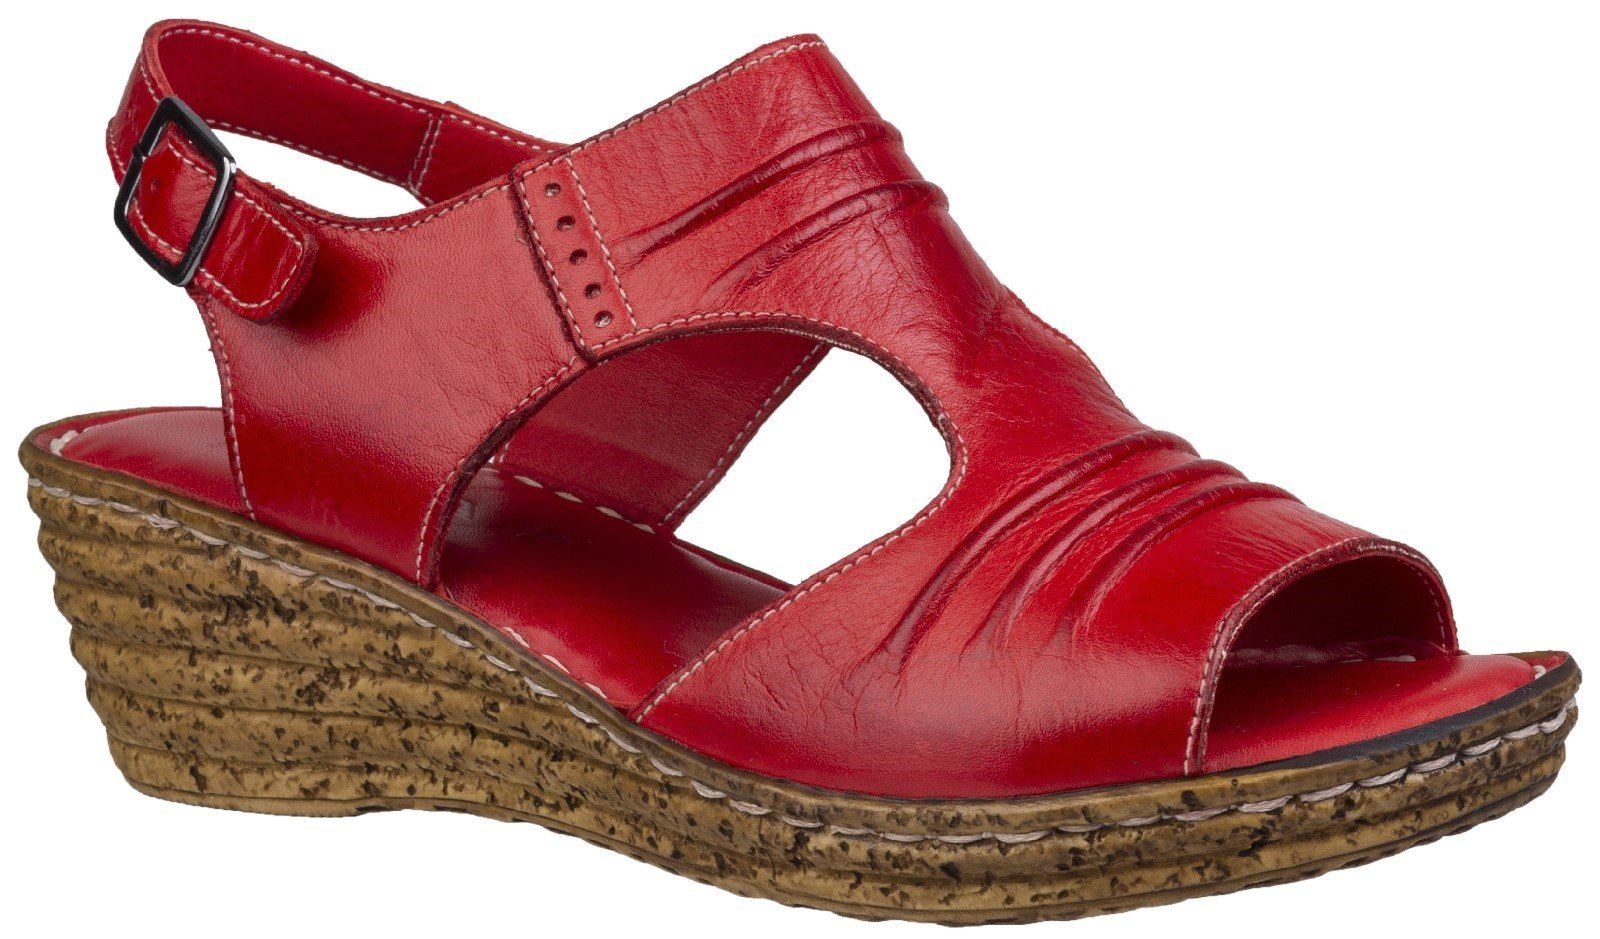 Fleet & Foster Women's Incence Pleated Leather Sandal Various Colours 28272 - Red 3